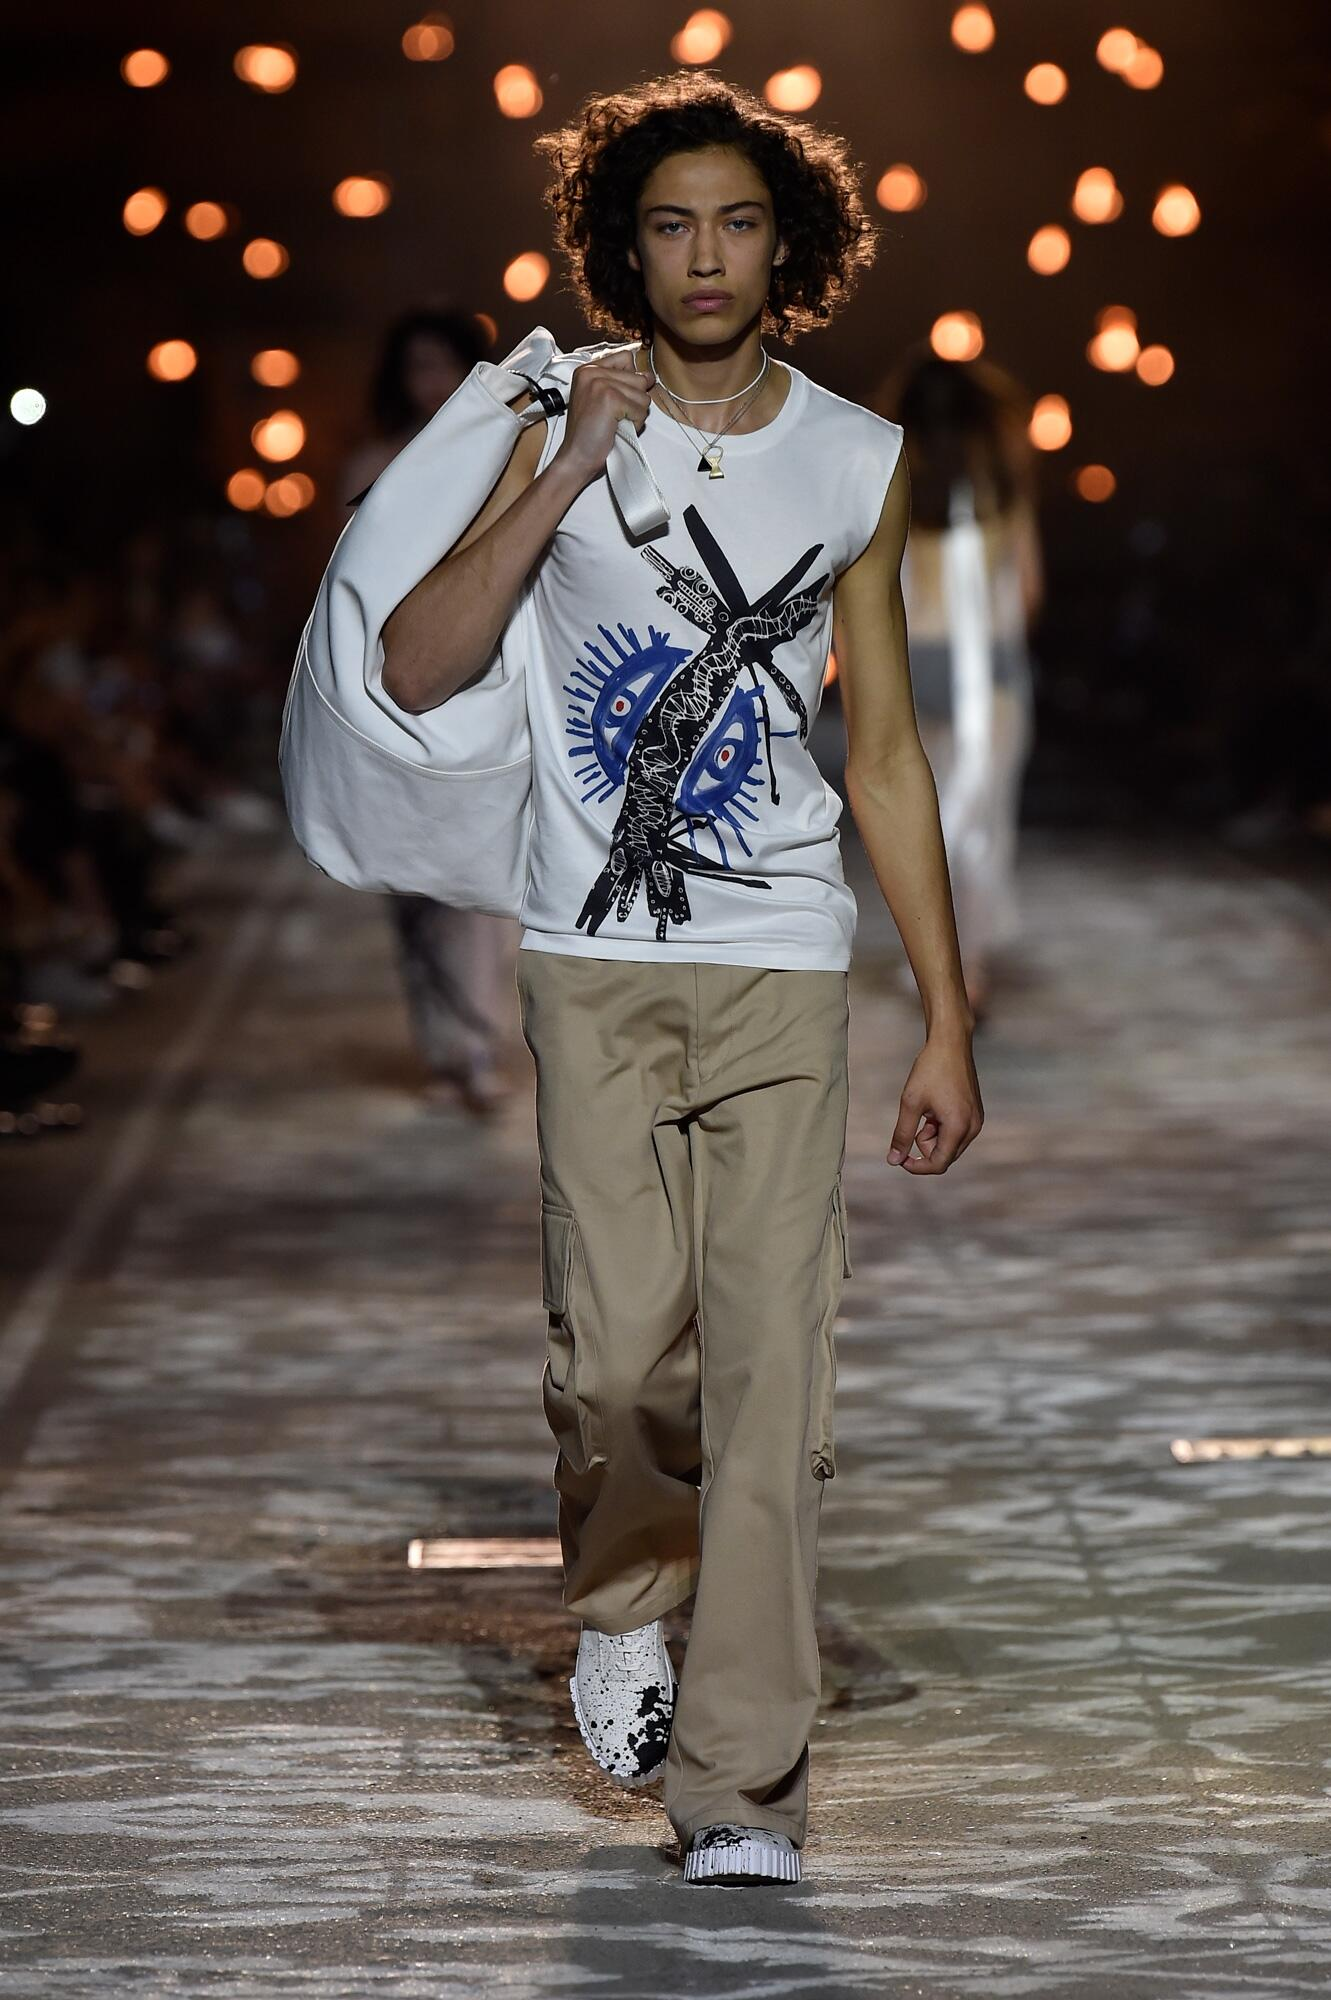 Hugo Man Catwalk